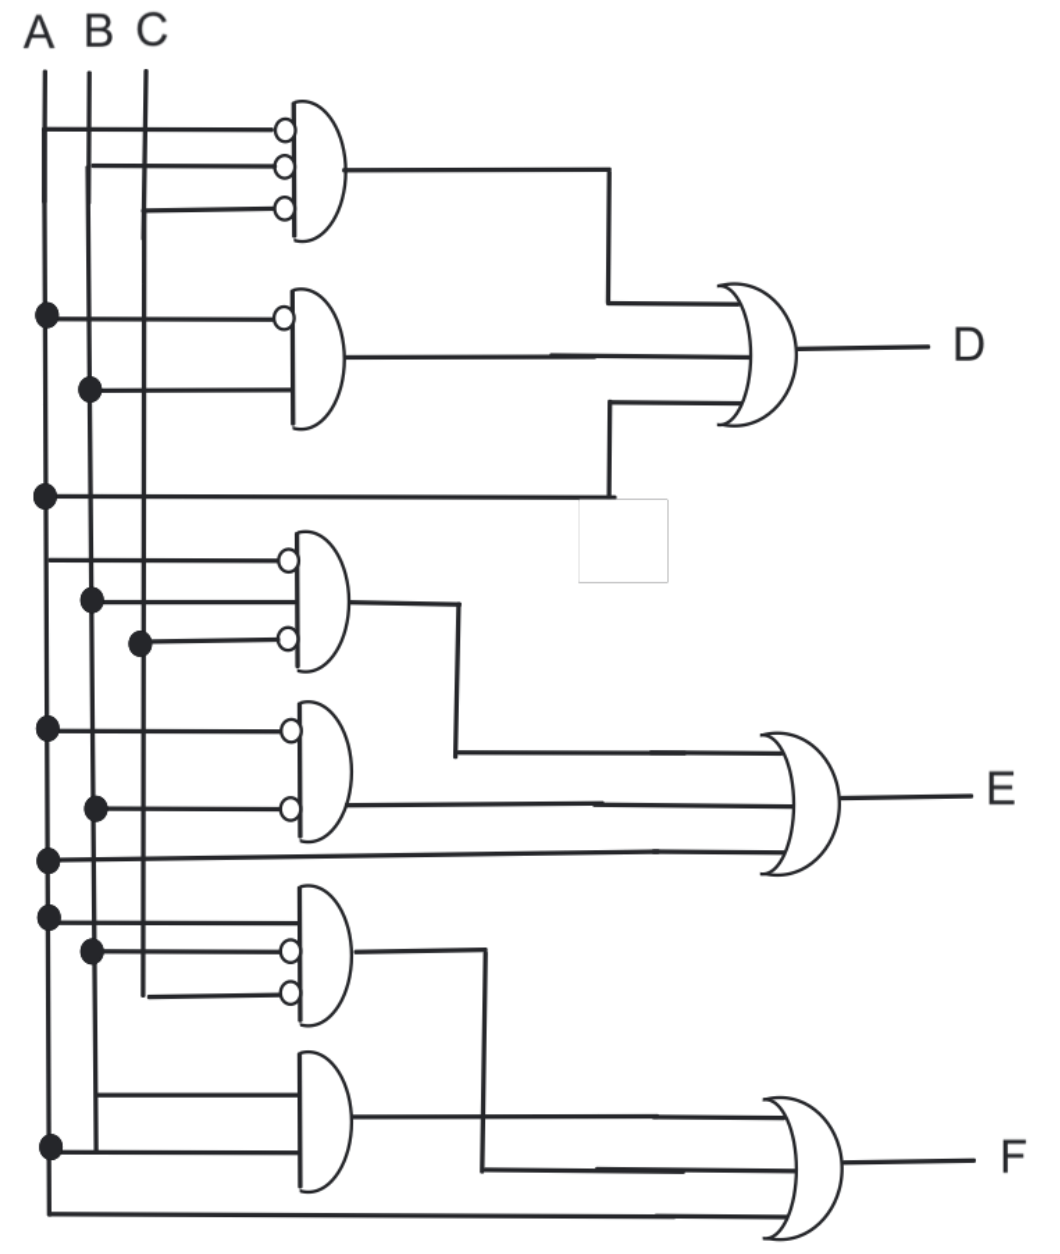 hight resolution of  complex circuit diagram